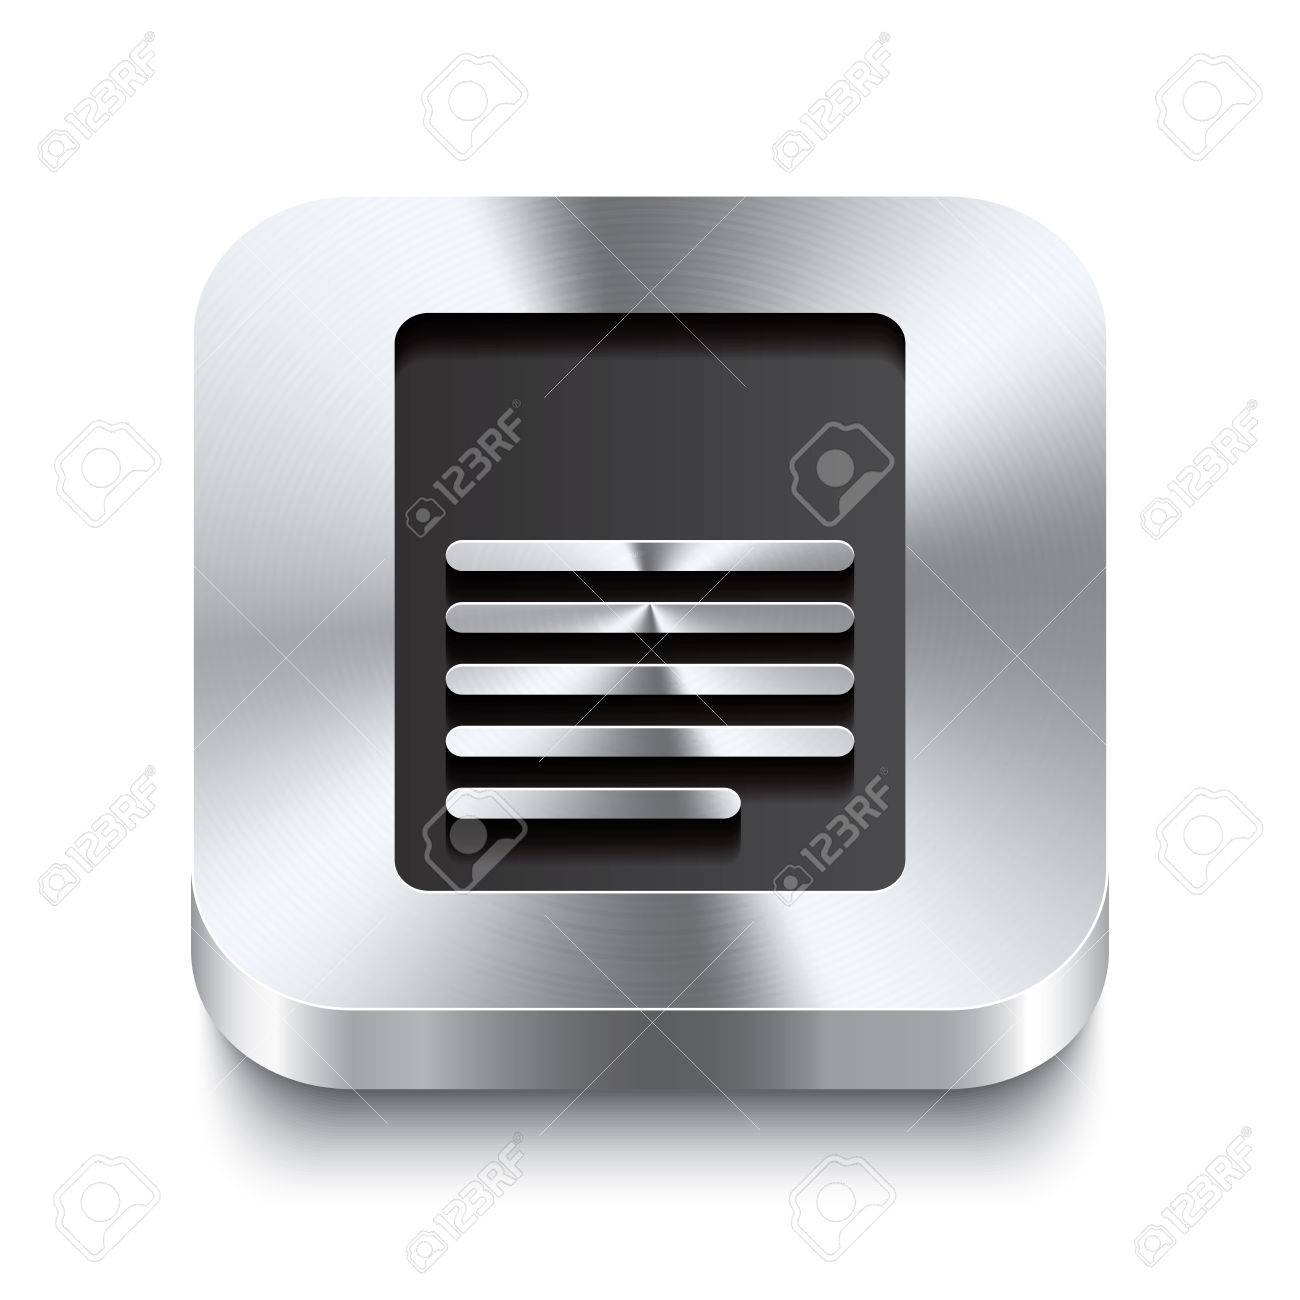 Realistic 3d vector illustration of a square metal button with a page icon  This brushed steel button is the perfect switch for navigation in any user interface Stock Vector - 23314004